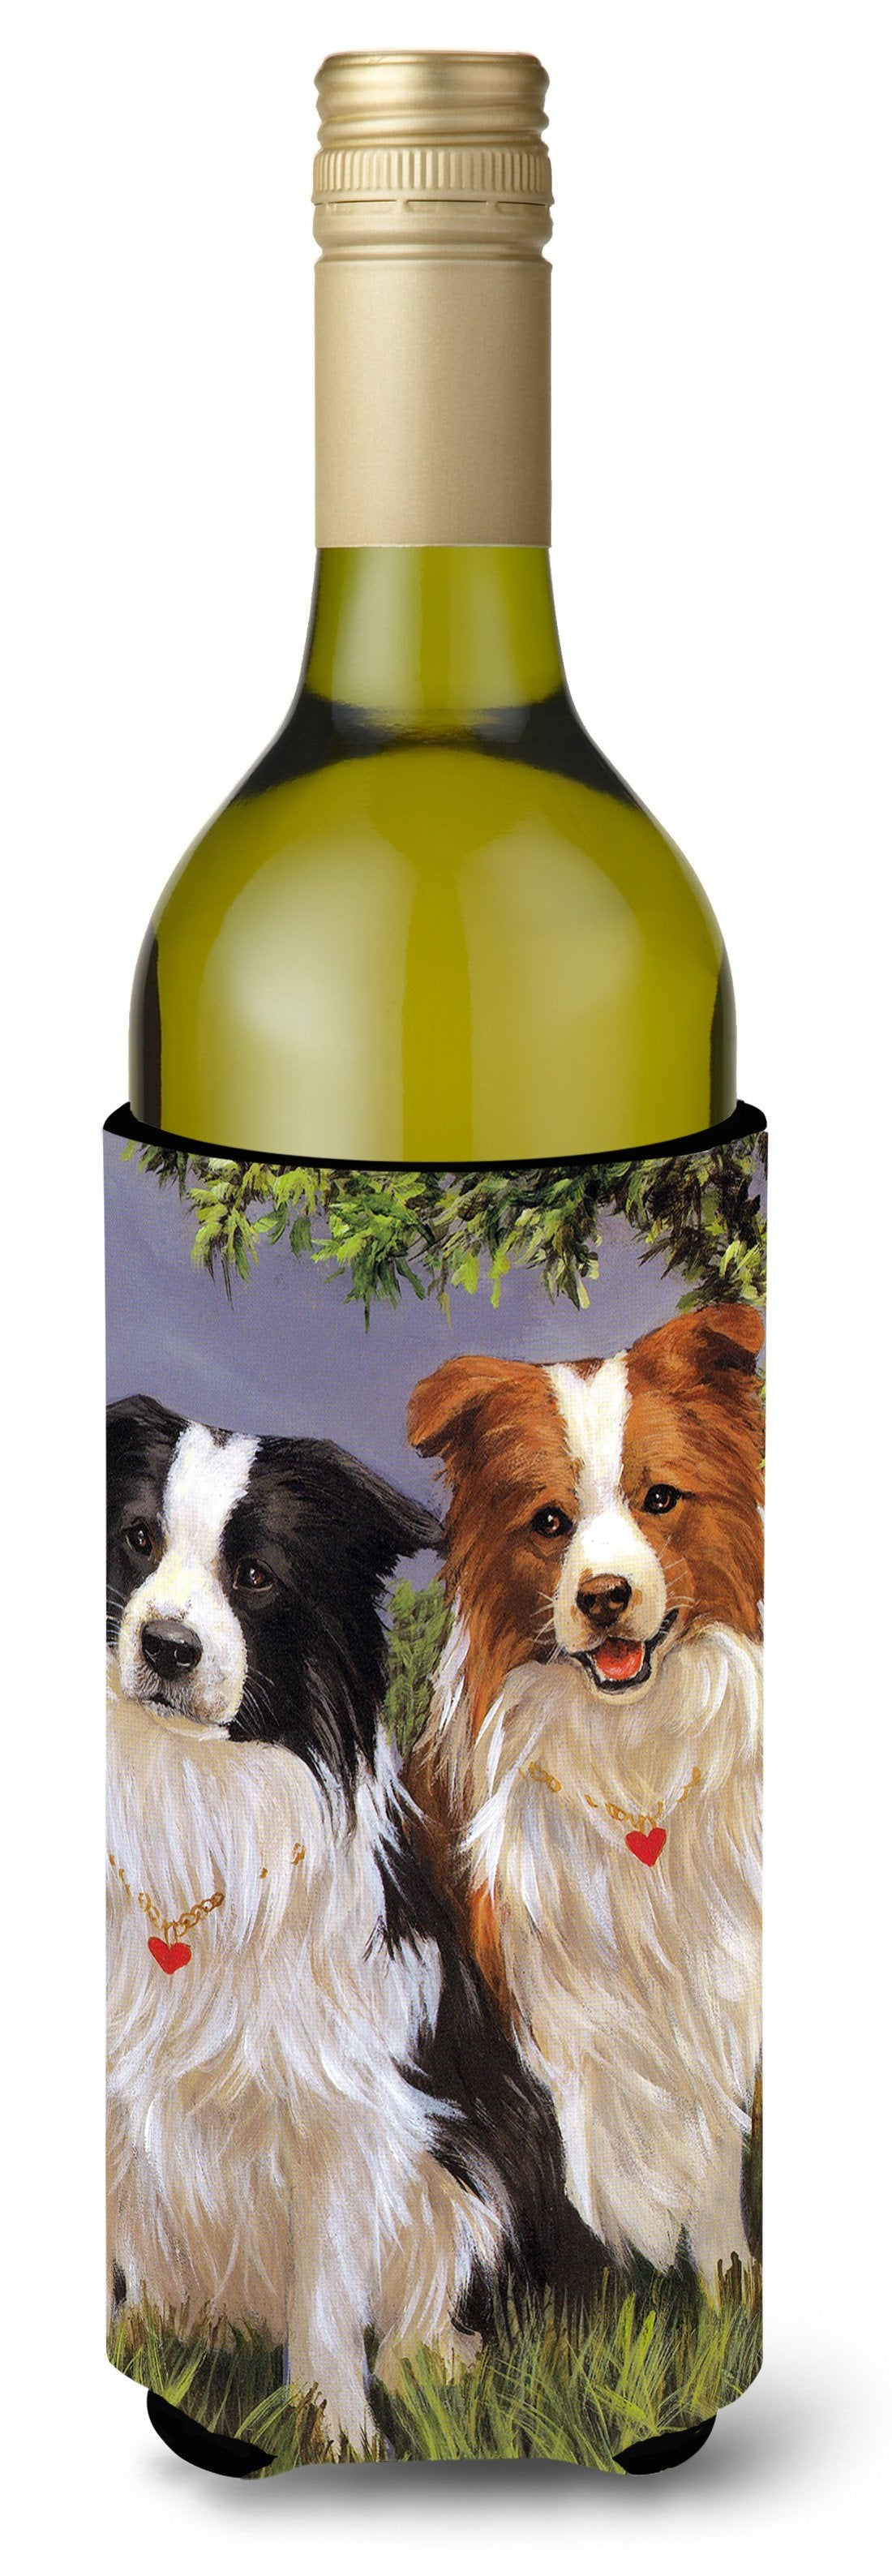 Border Collie Patrol Wine Bottle Hugger PPP3029LITERK by Caroline's Treasures